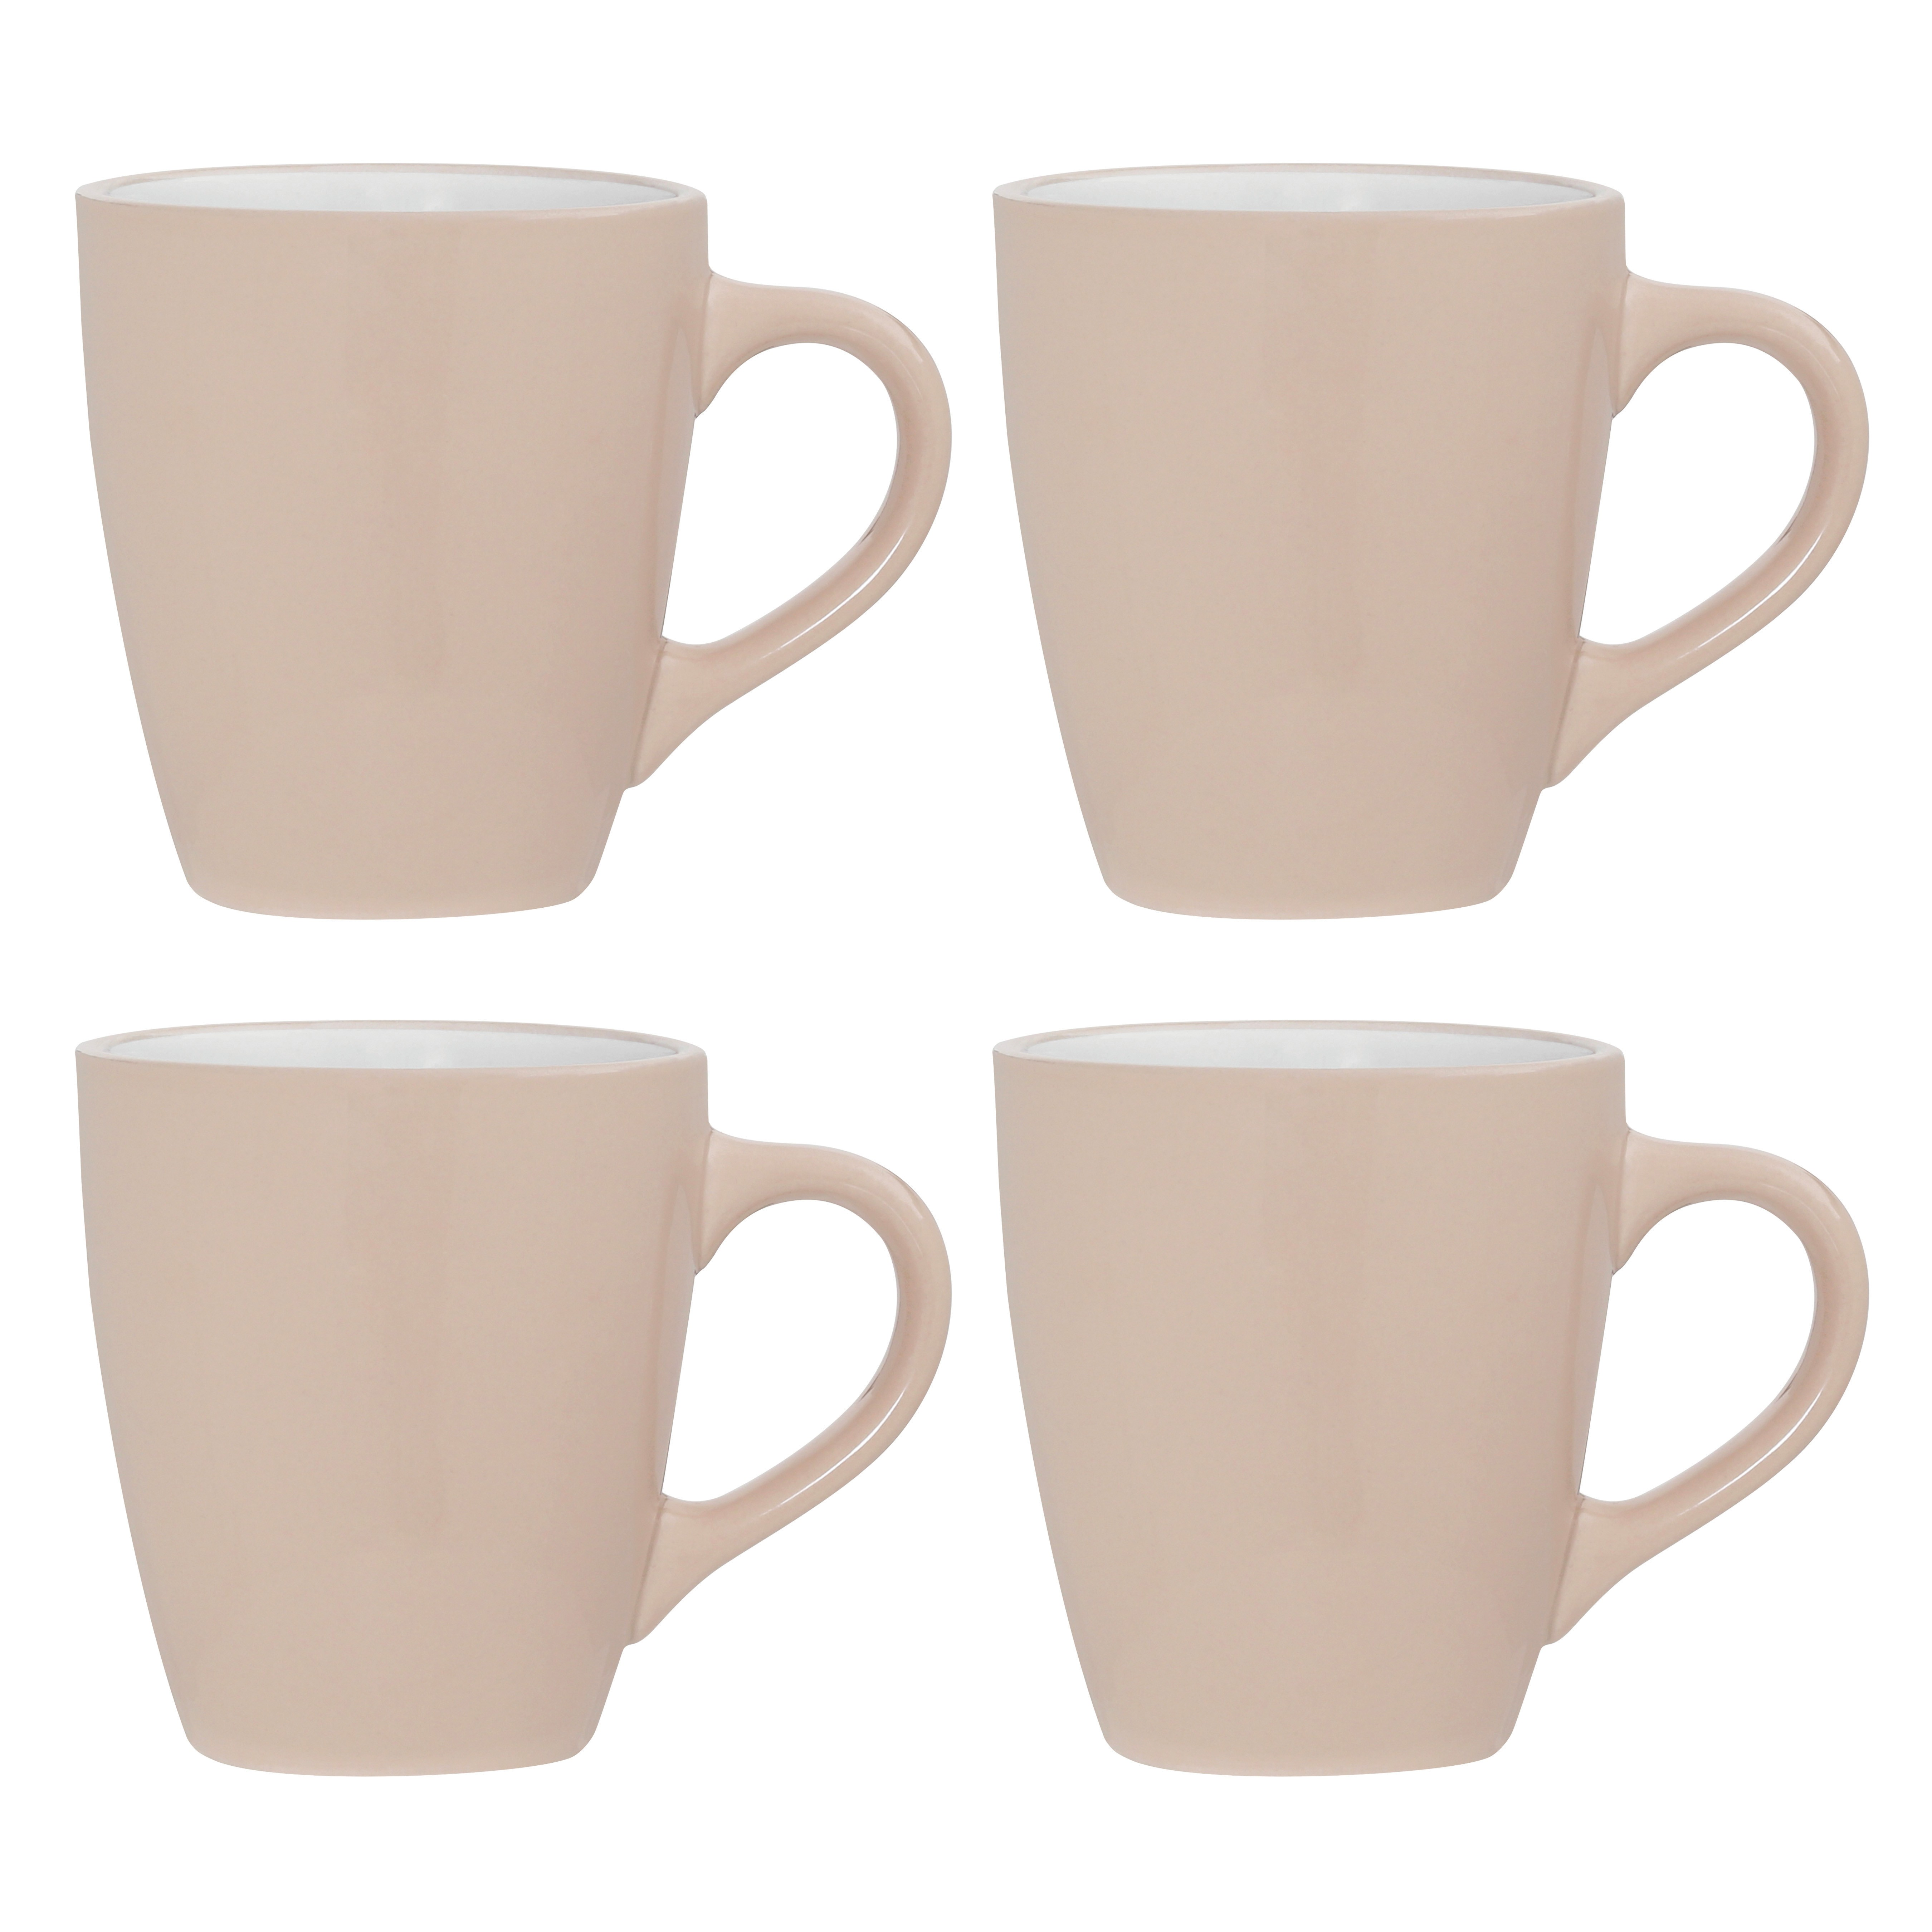 Set of 4, Natural/White Stoneware Mugs